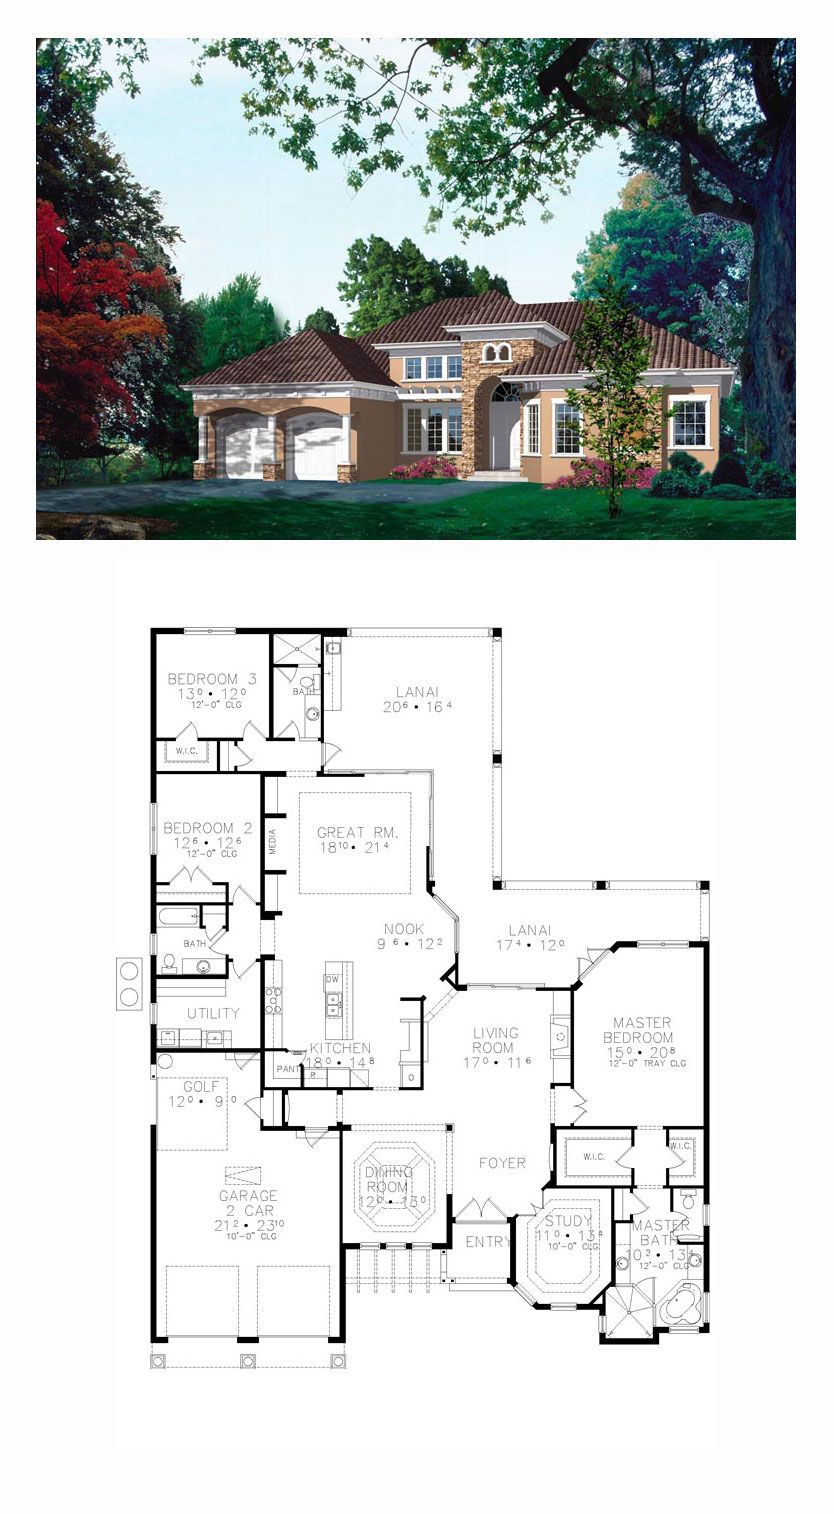 Tuscan Style House Plan 63378 With 3 Bed 3 Bath 2 Car Garage Tuscan House Plans Beach House Plans Architectural Design House Plans